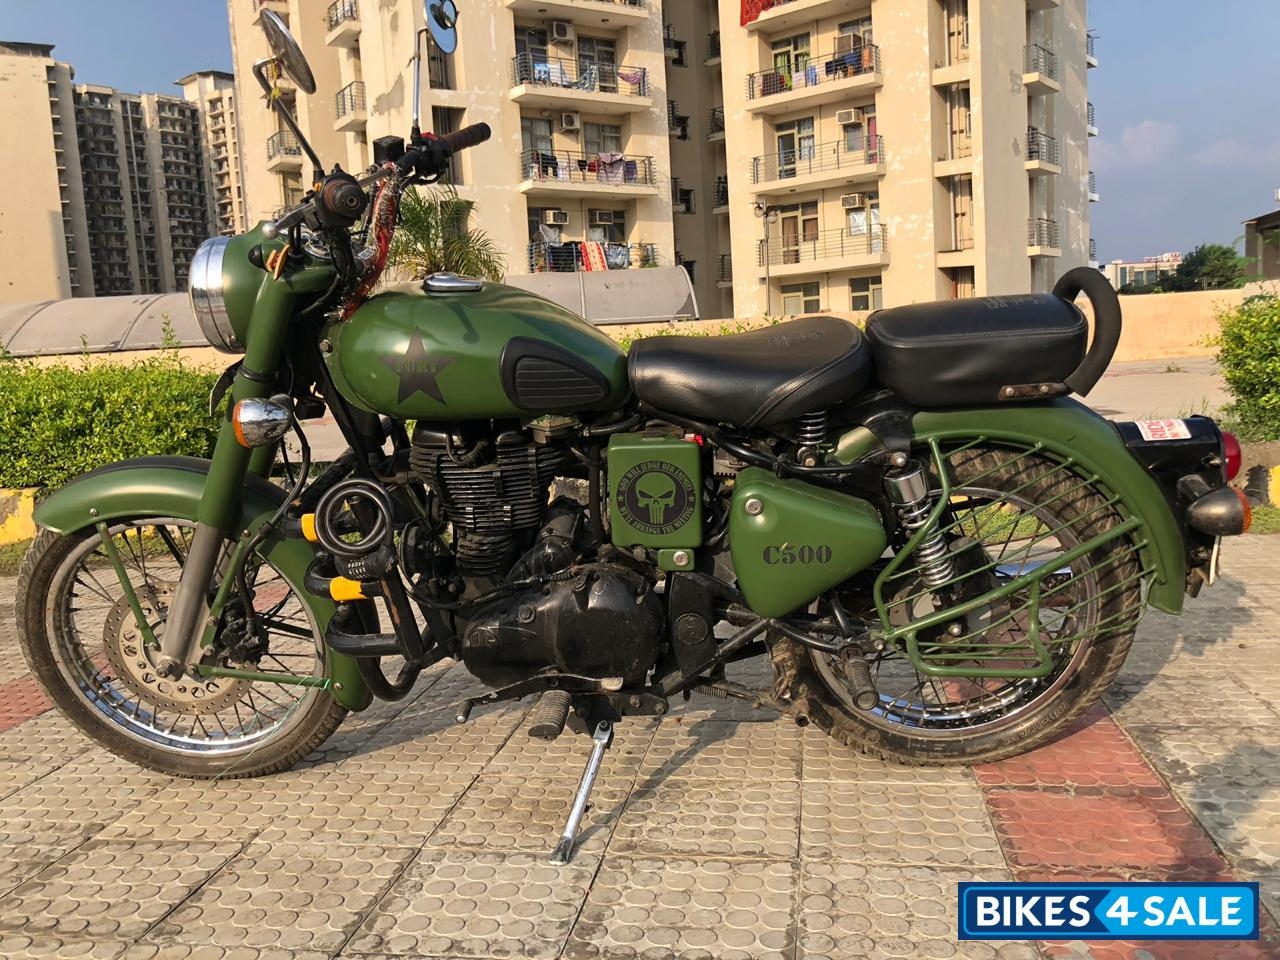 Used 2012 Model Royal Enfield Classic 500 For Sale In New Delhi Id 186625 Olive Green Colour Bikes4sale